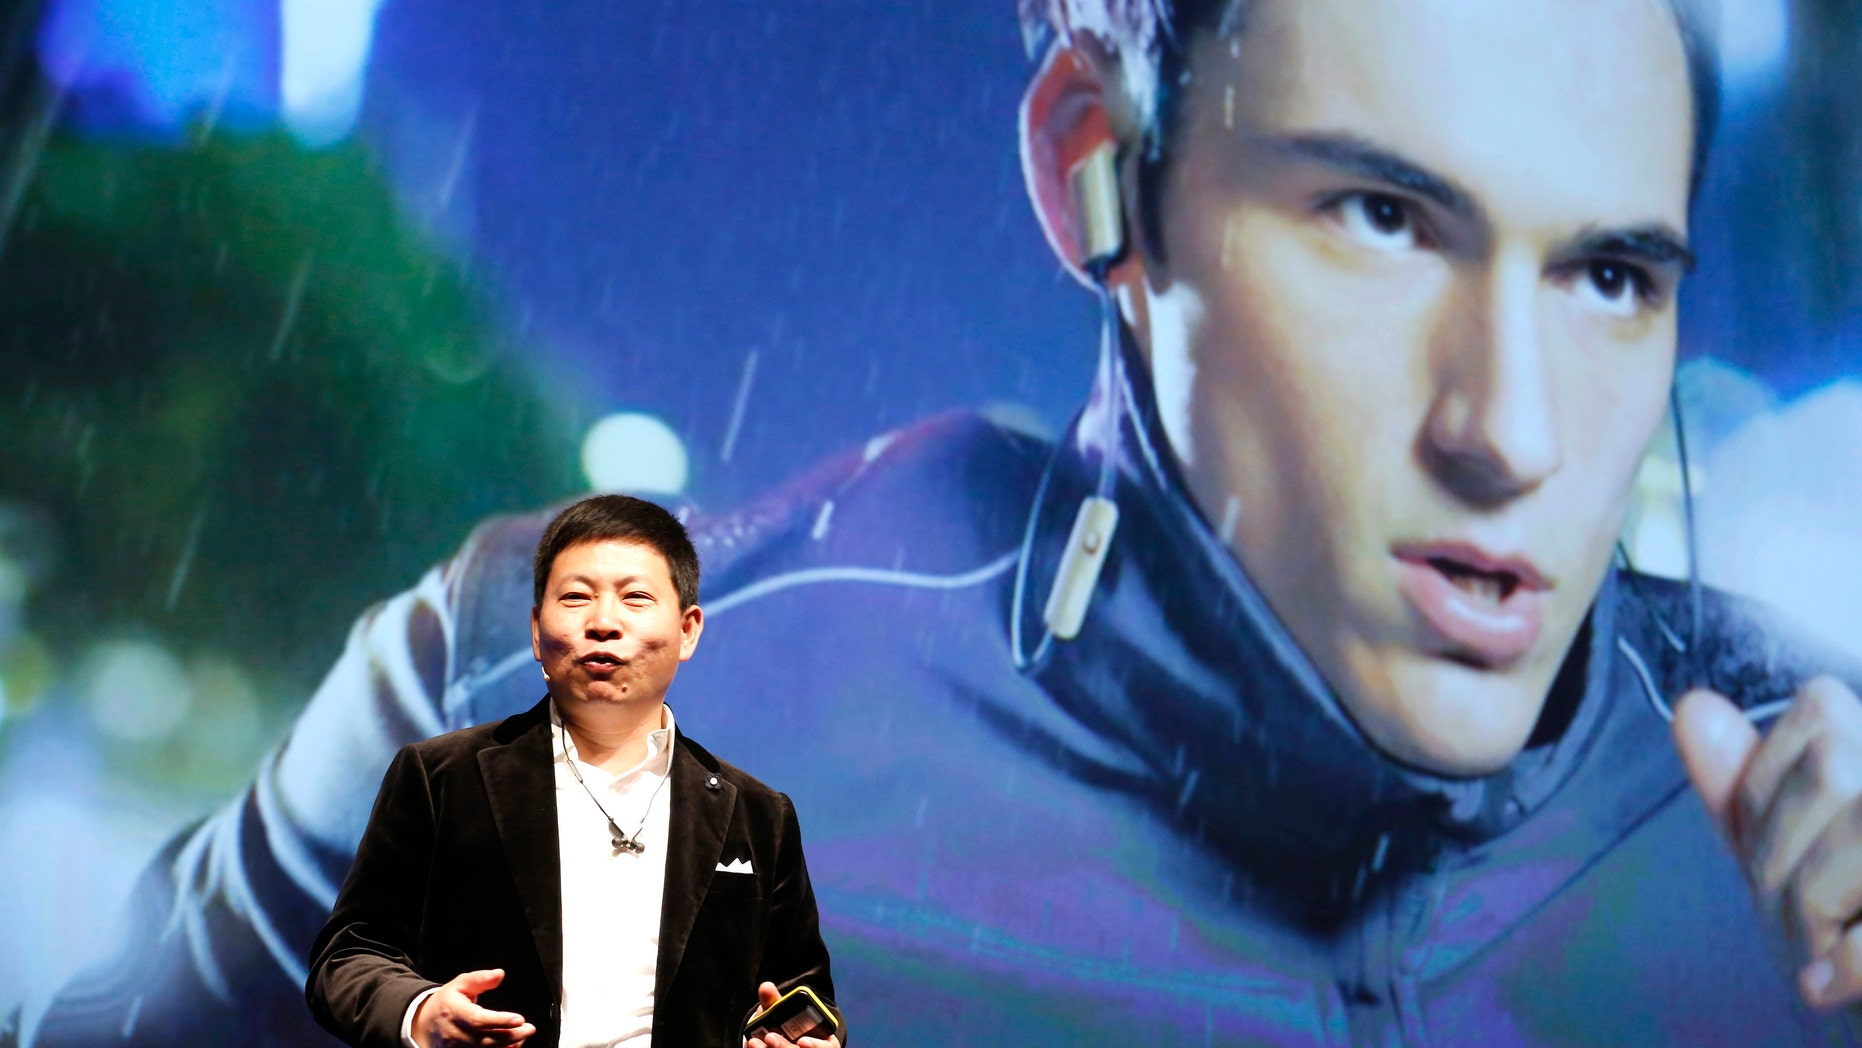 Huawei Chief Executive Richard Yu presents the TalkBand N1 during a news conference in Barcelona March 1, 2015.